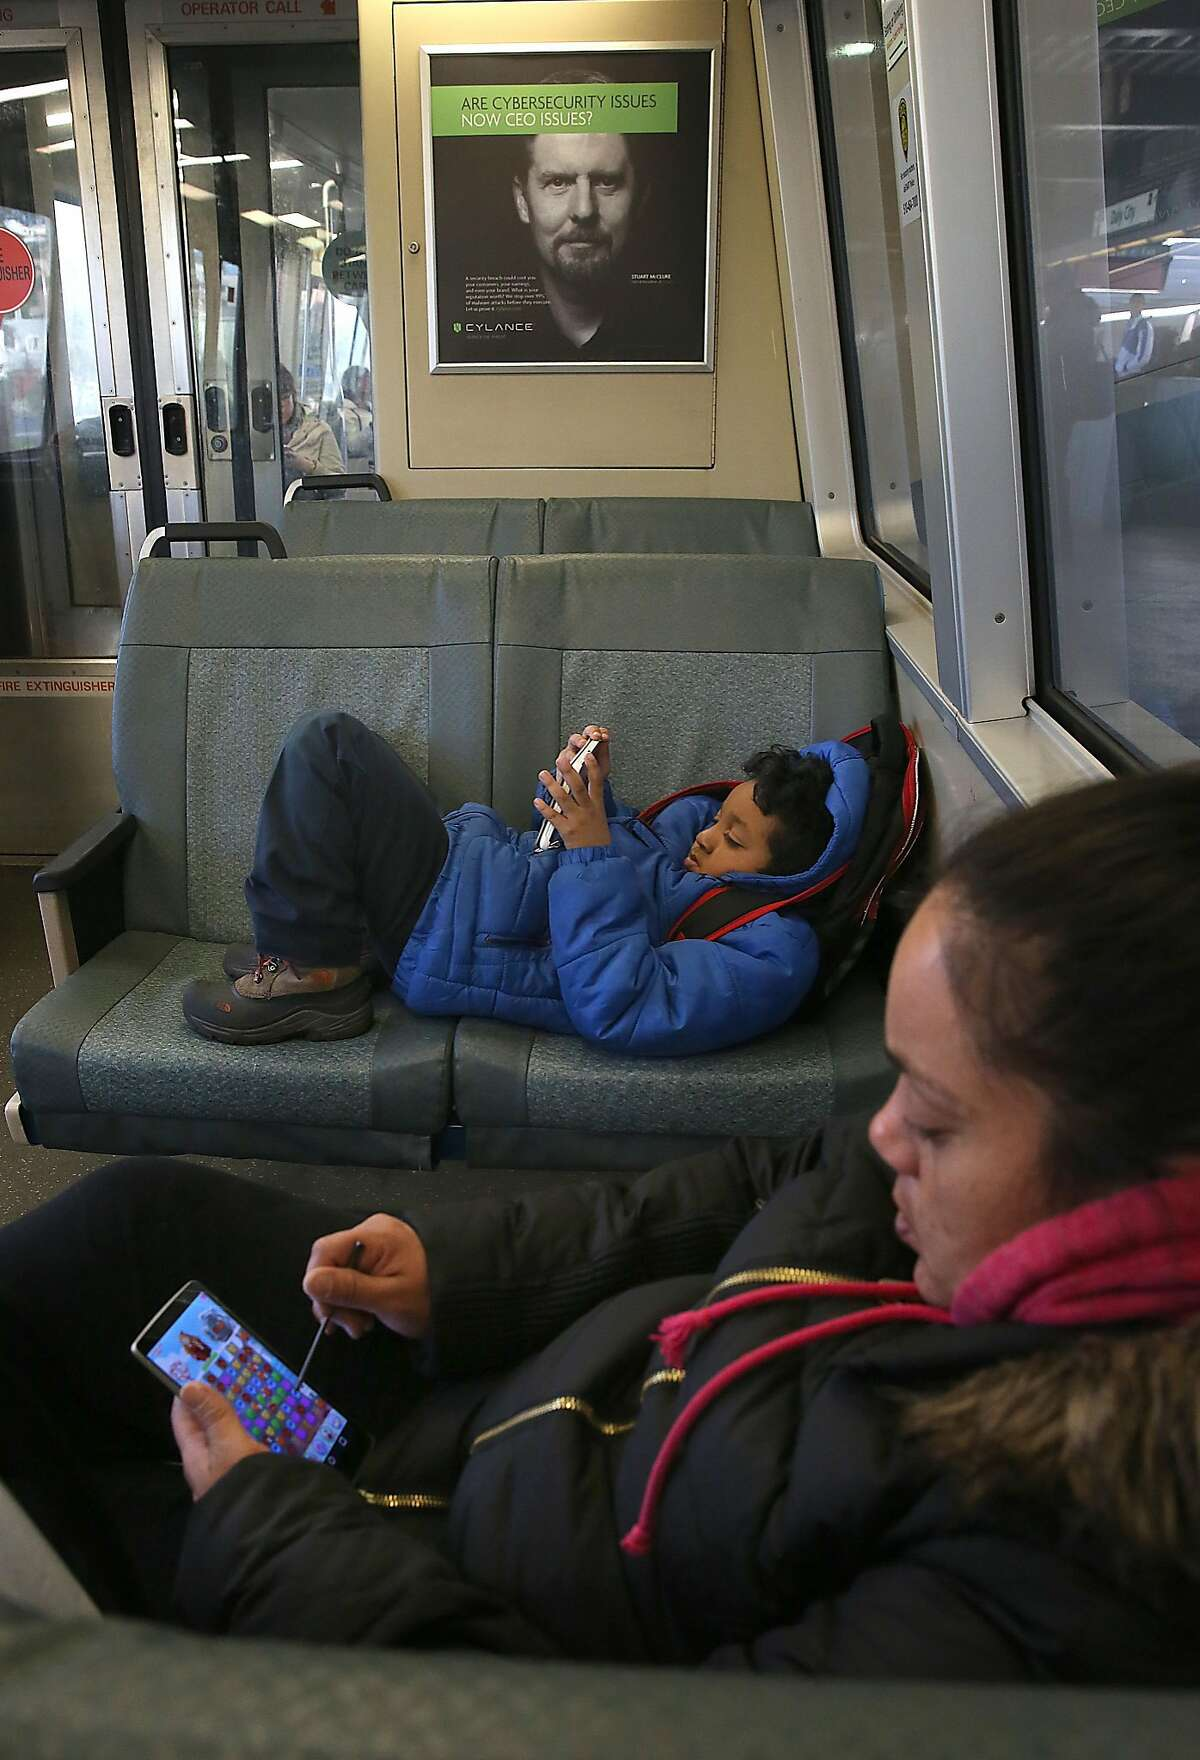 Teresa Fields (front) and her son Terronnie Fields (middle), 7 years old, head home on a near empty train from the Daly City bart station in Daly City, California, on Monday, March 7, 2016.